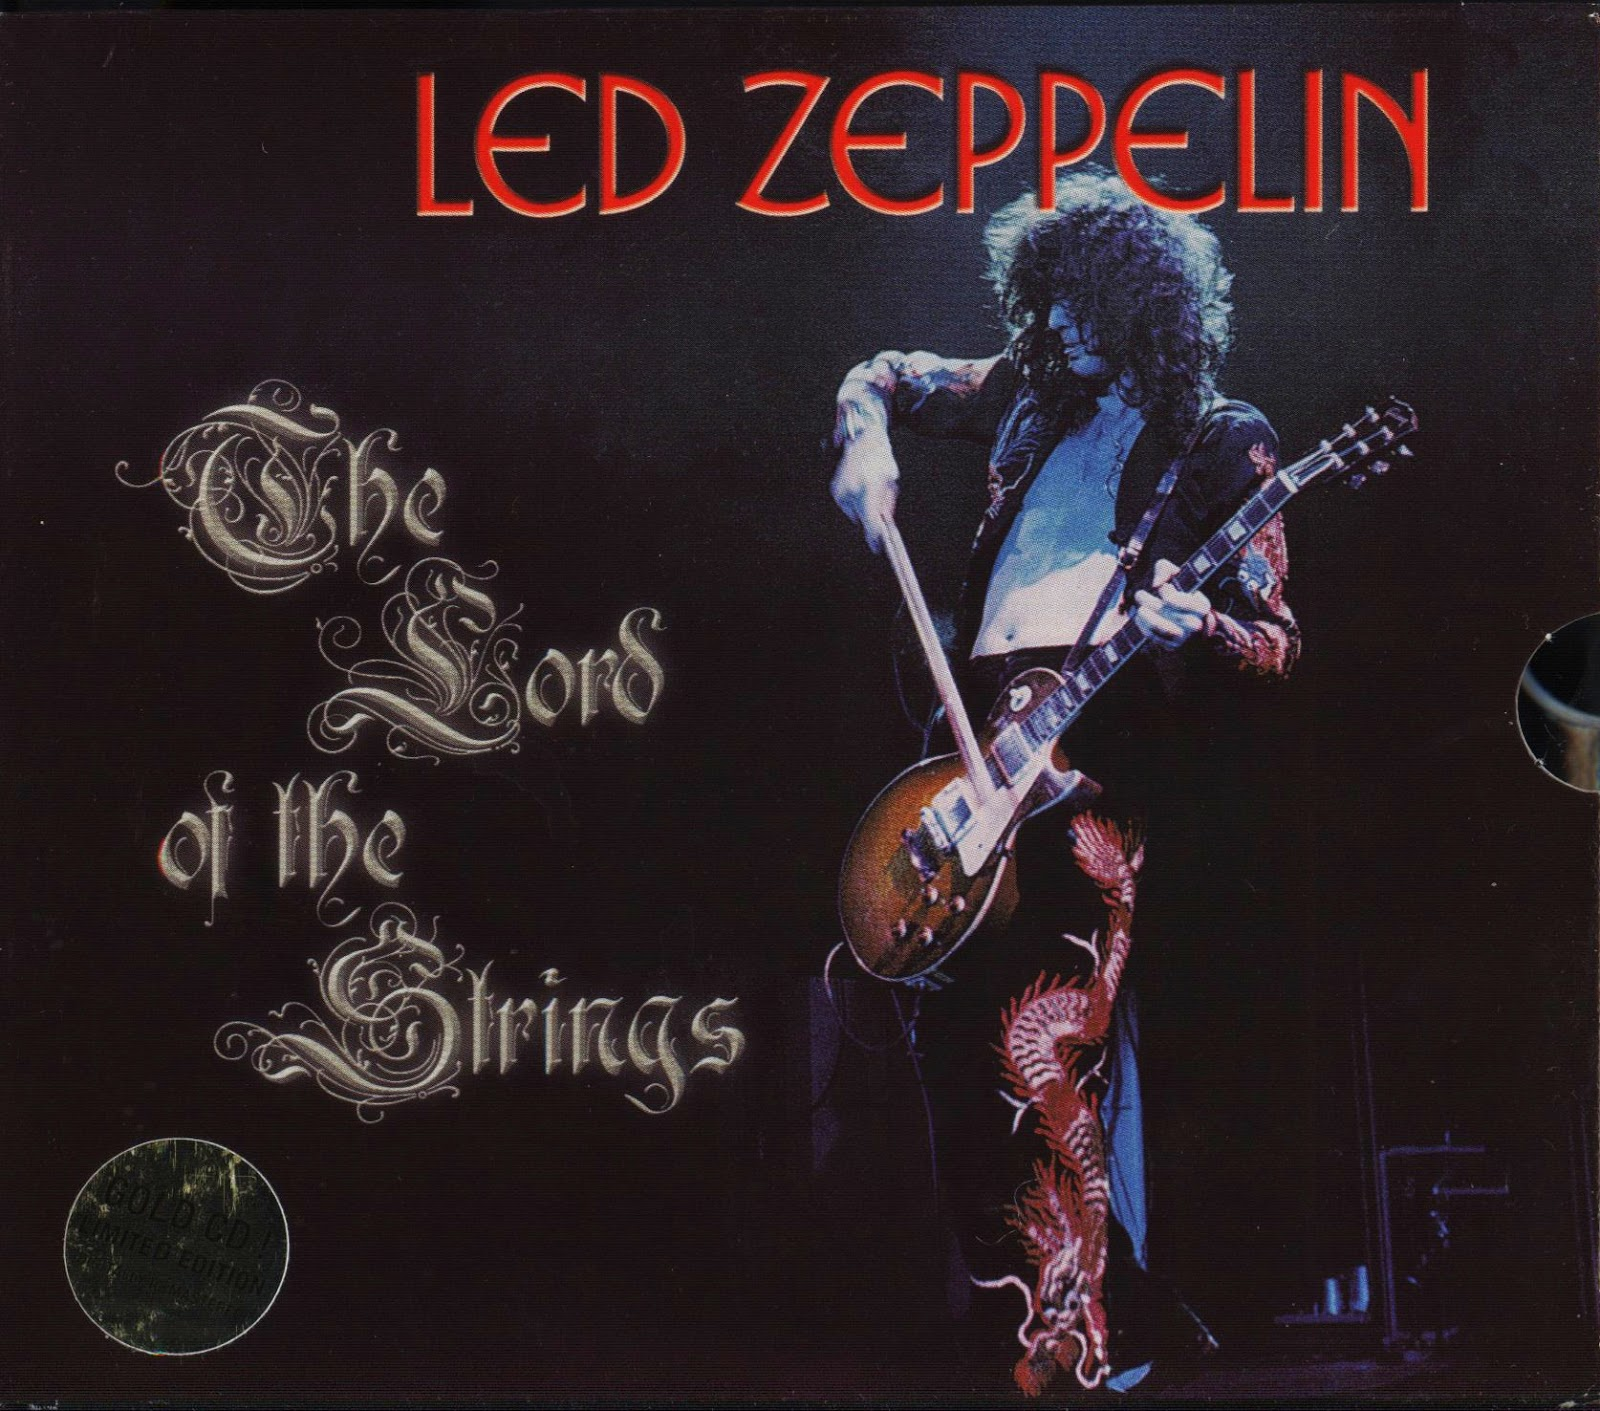 1977 - Led Zeppelin - The Lord Of The Strings - Bootleg